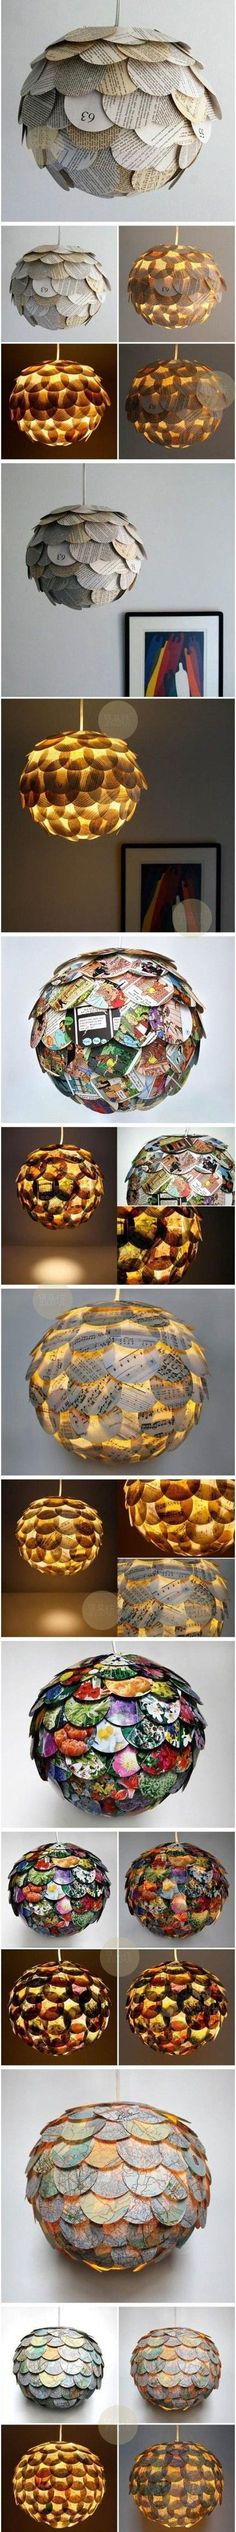 Recycled lampshade with recycle paper